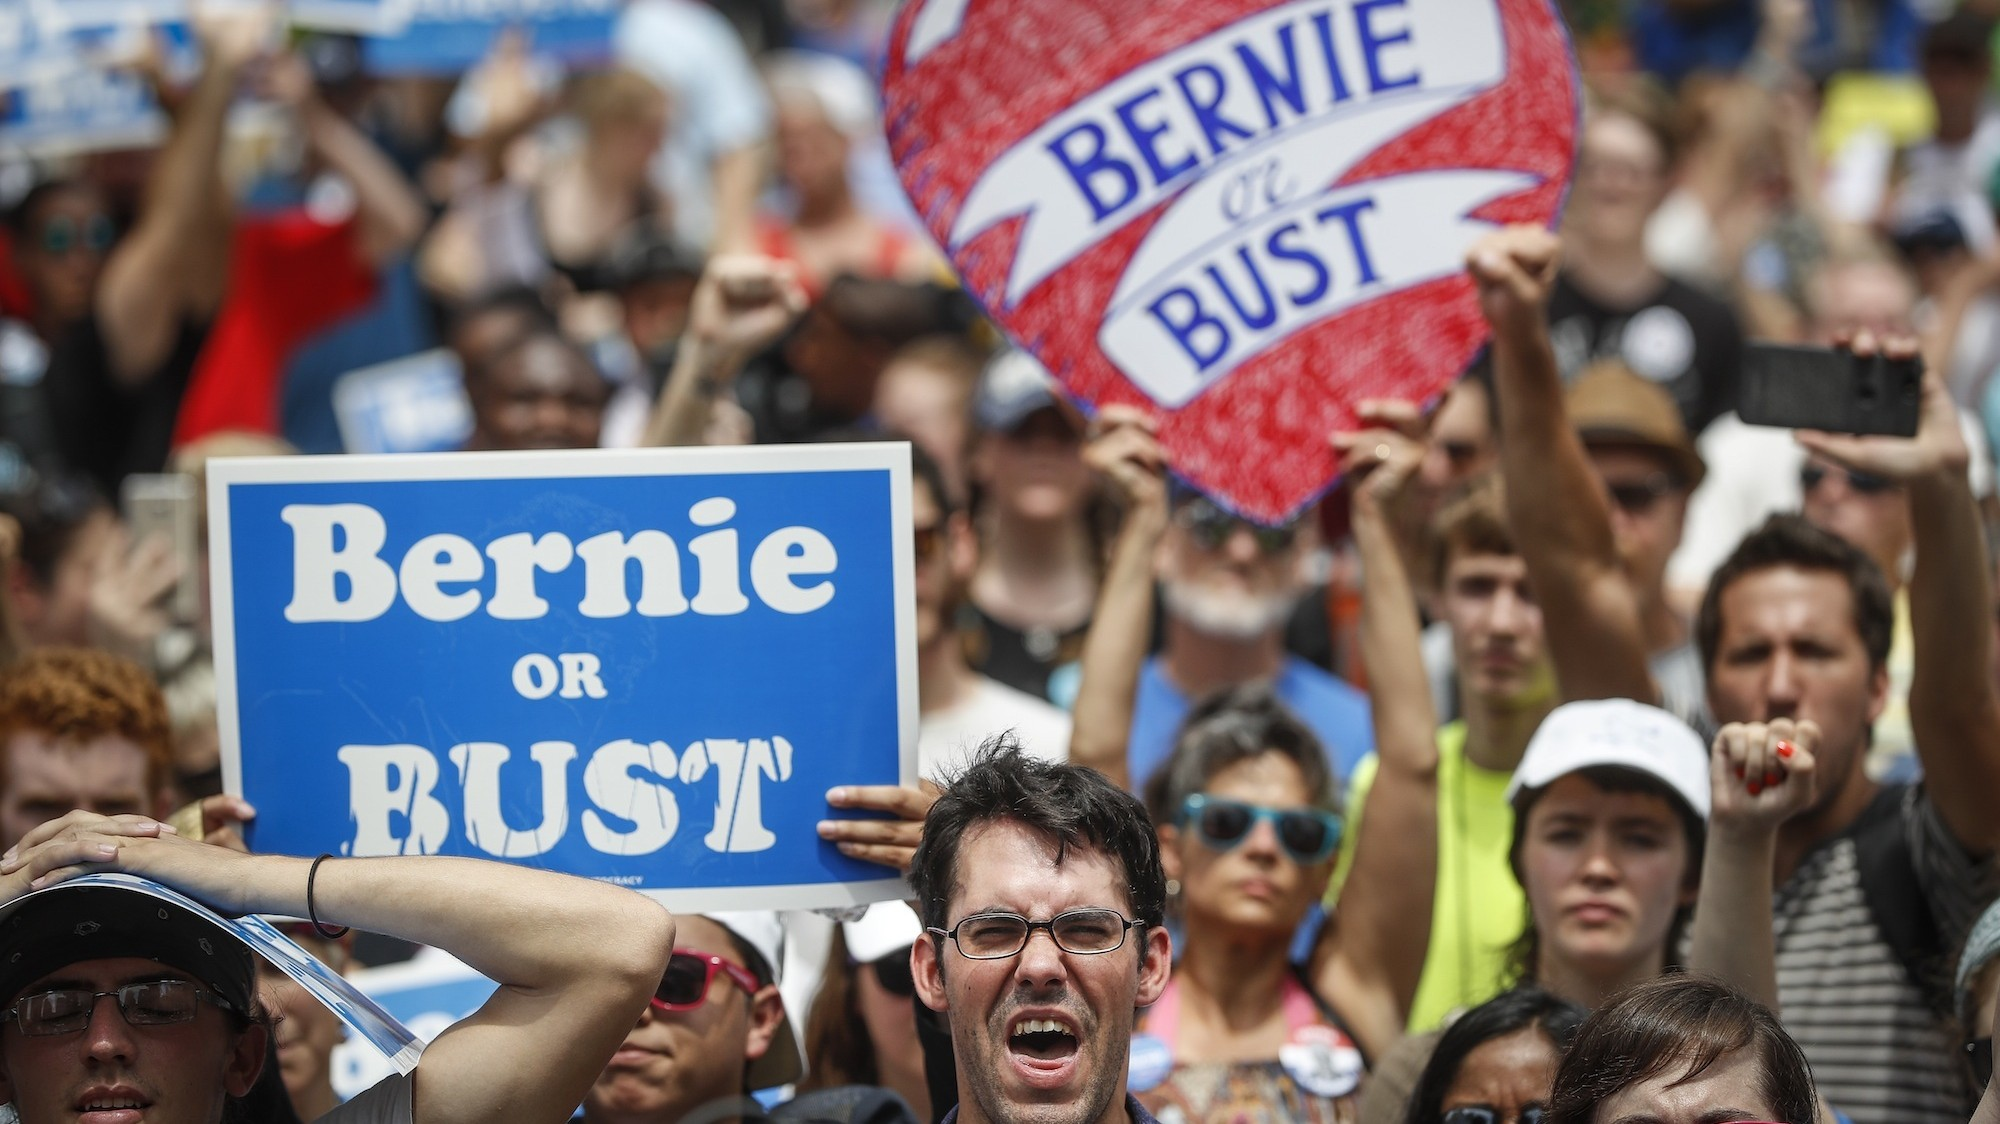 Bernie supporters are shocked — shocked! — at how politics works